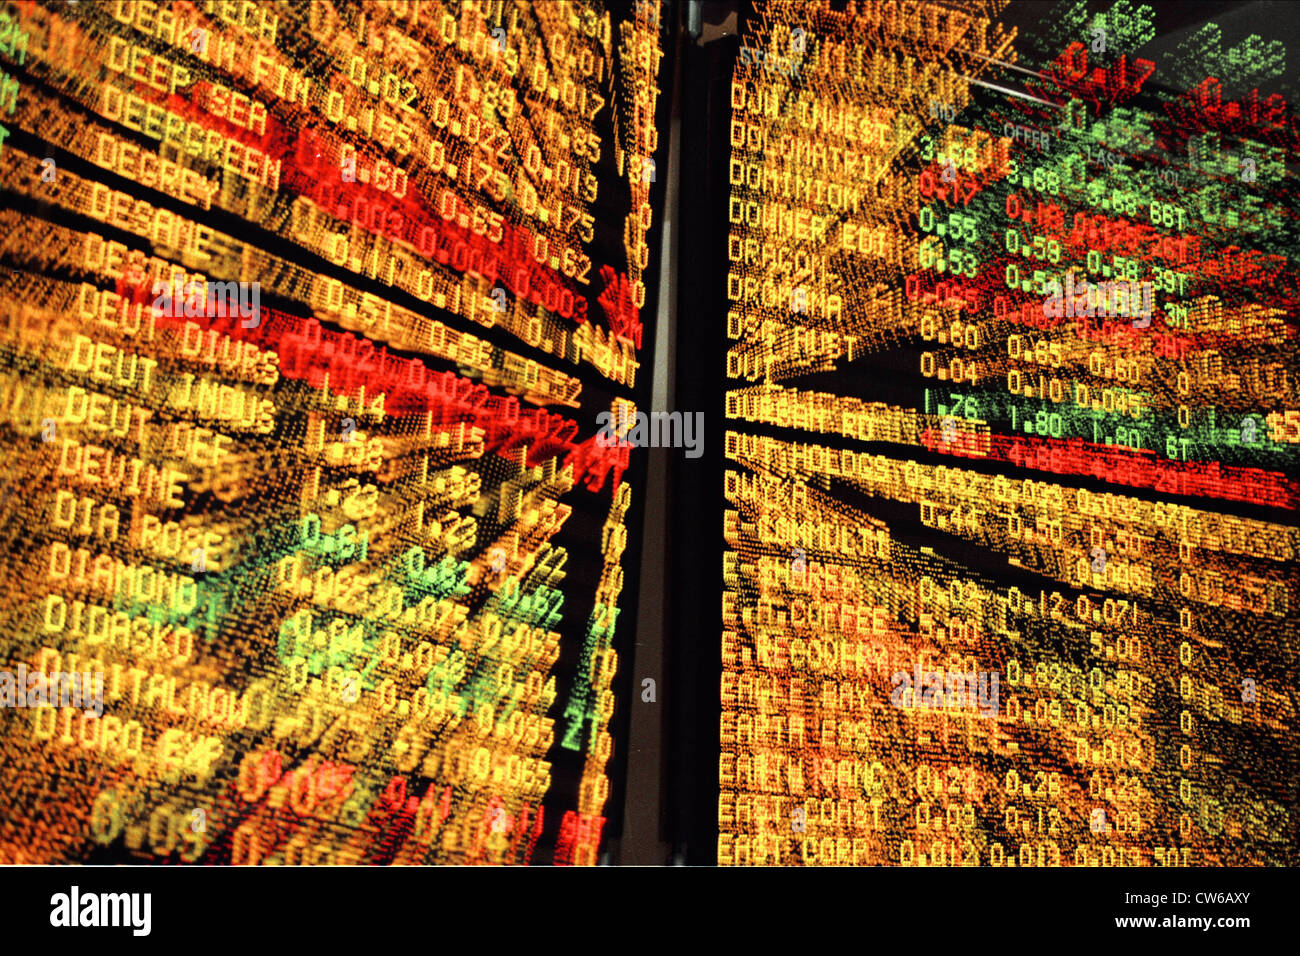 blackboard at stock market - Stock Image